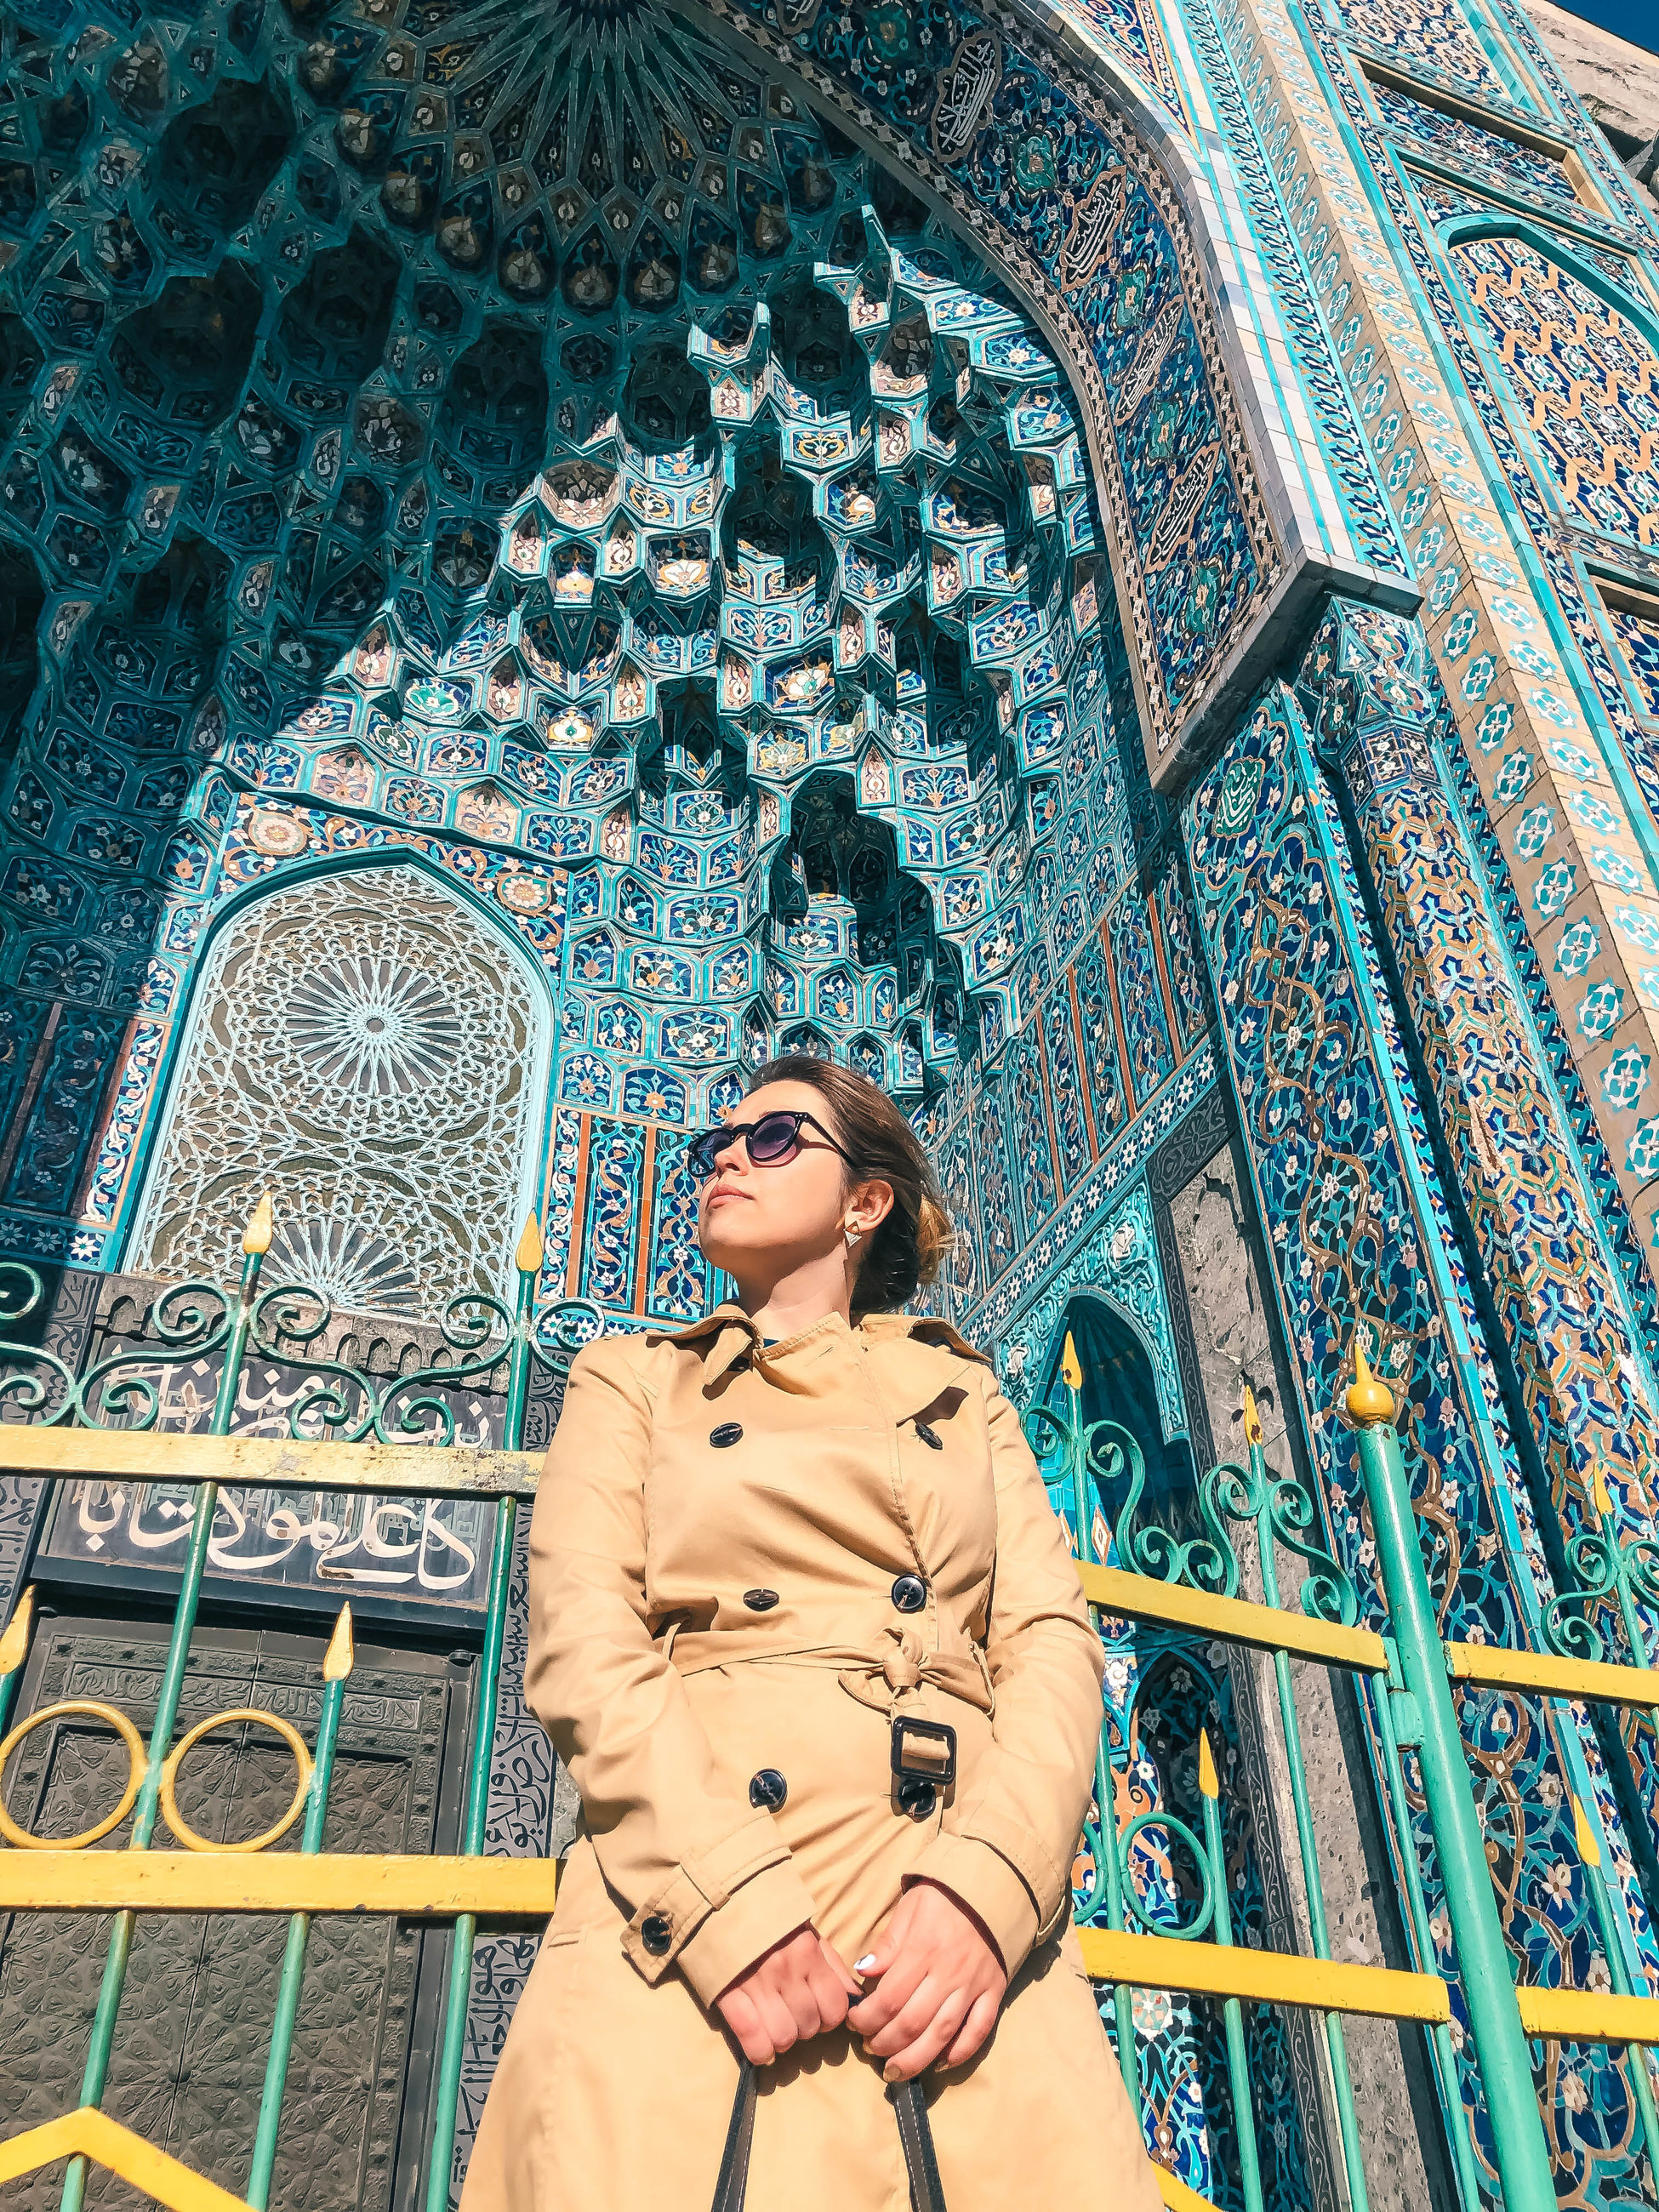 one person, architecture, adult, women, young adult, front view, low angle view, pattern, leisure activity, three quarter length, clothing, built structure, lifestyles, standing, portrait, fashion, religion, spirituality, place of worship, travel destinations, day, casual clothing, looking, building exterior, belief, smiling, outdoors, building, looking up, glasses